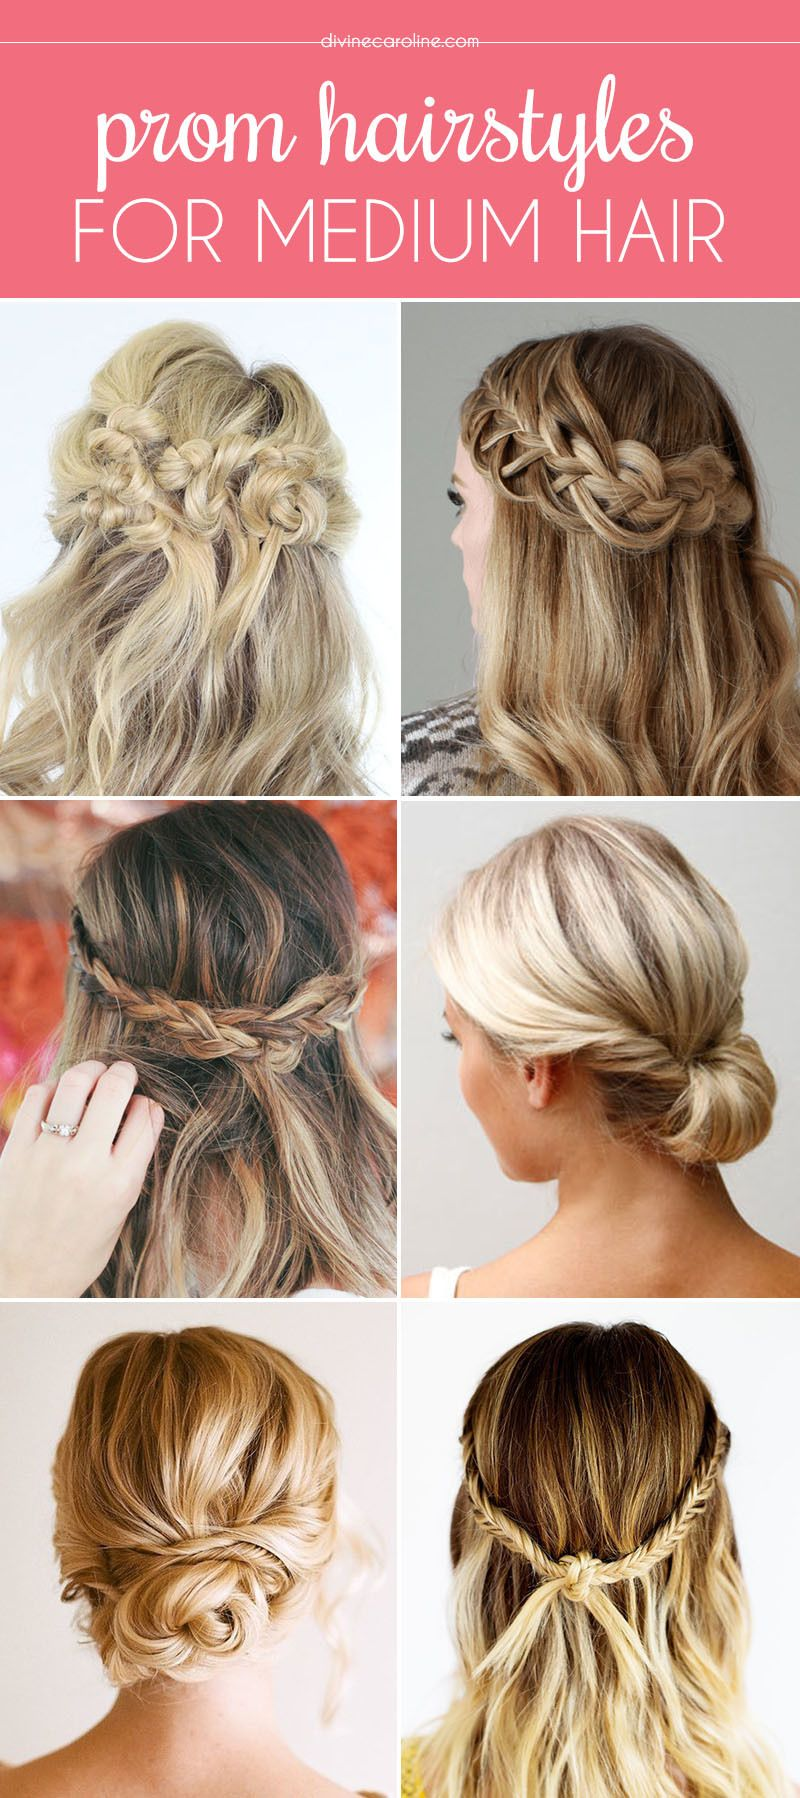 French Hairstyles Our Favorite Prom Hairstyles For Mediumlength Hair  French Braid